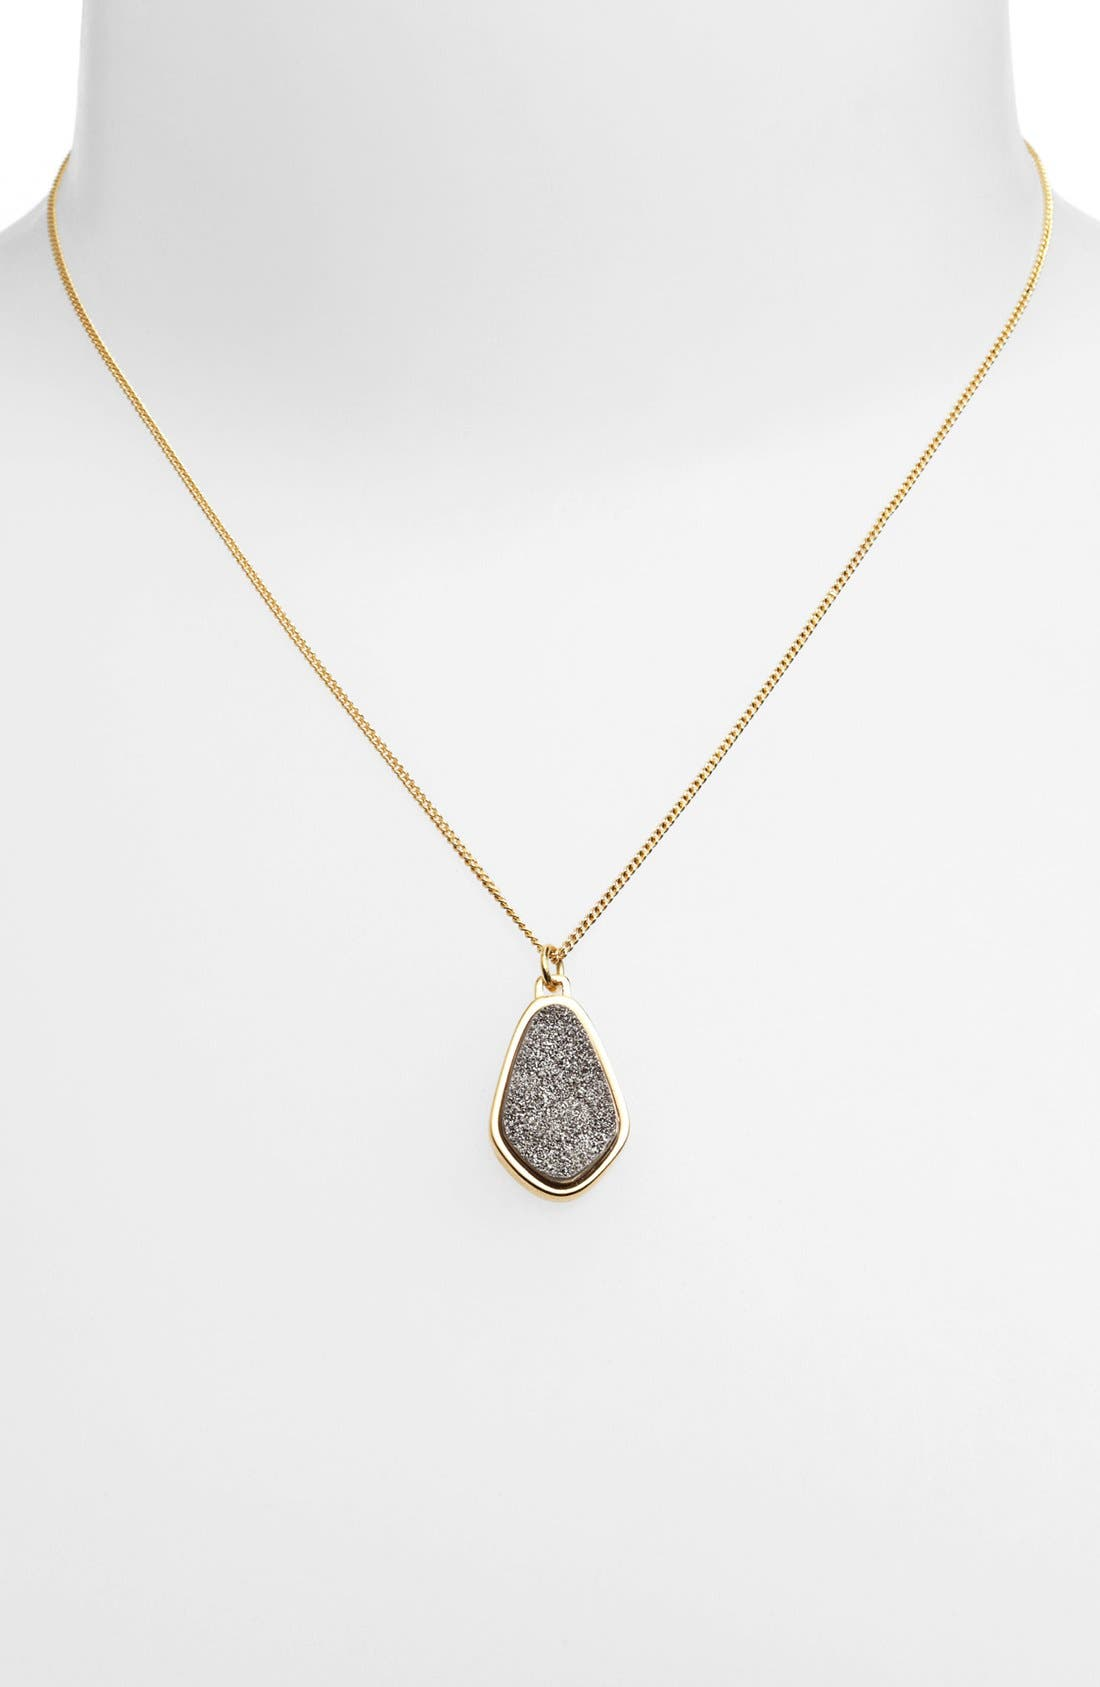 Main Image - Marcia Moran Organic Shape Pendant Necklace (Online Only)